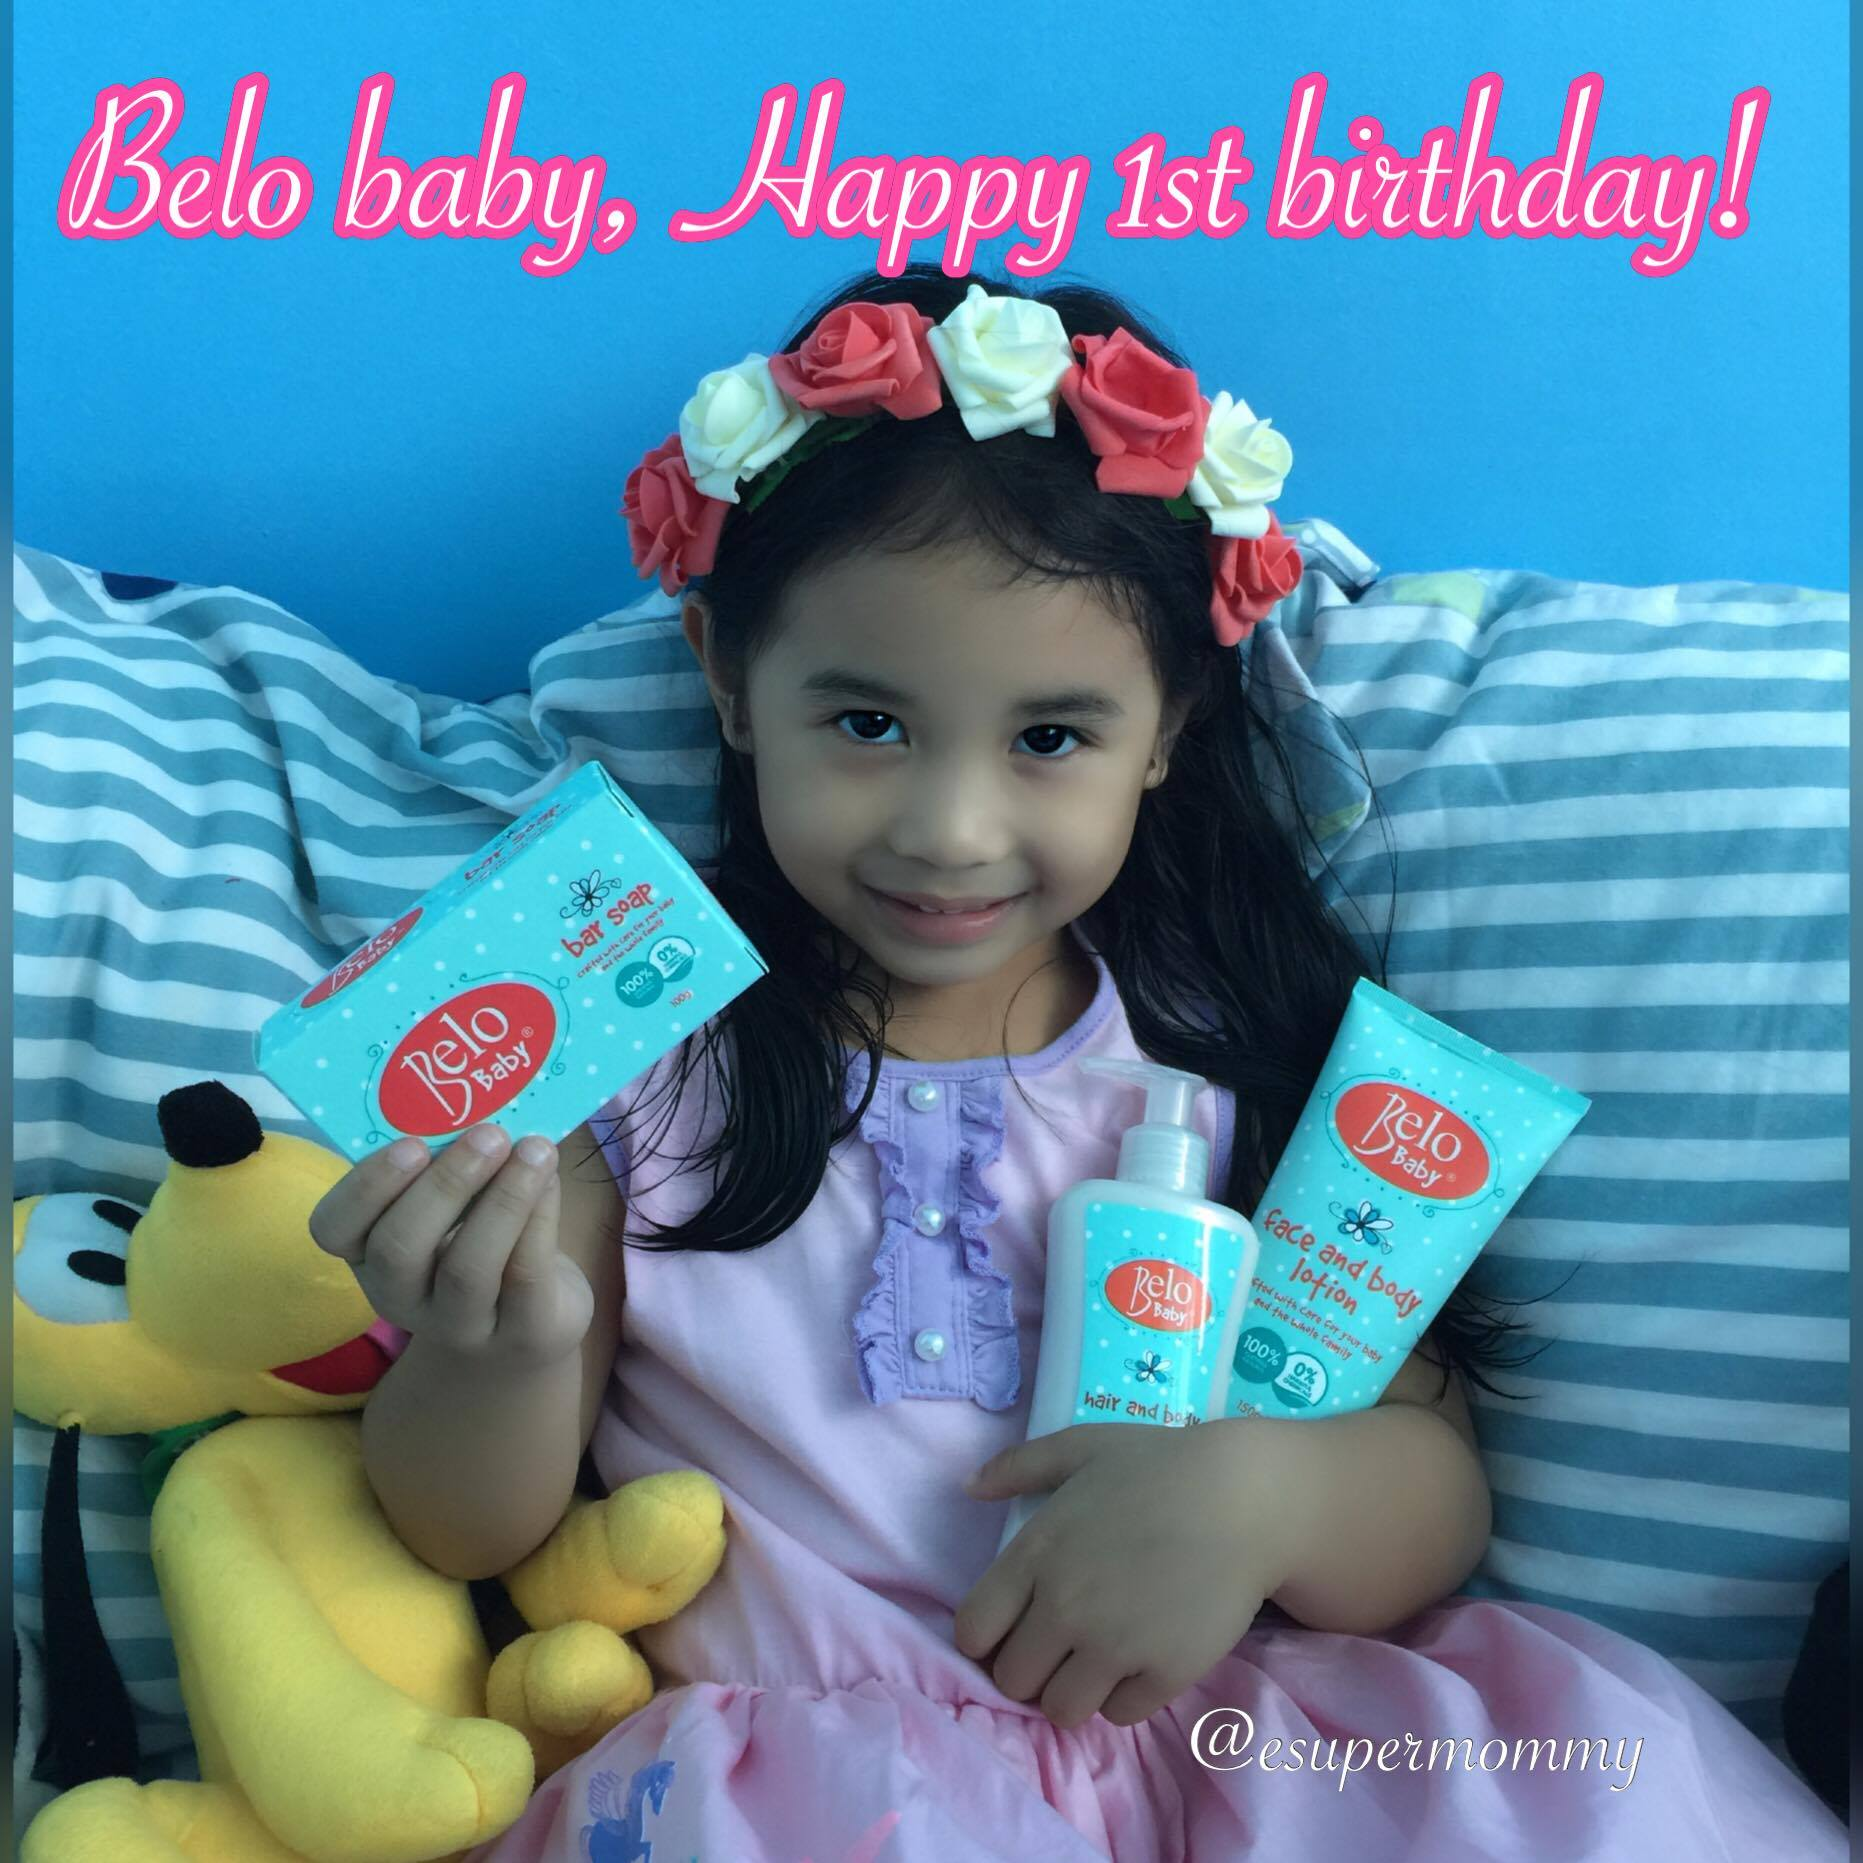 Belo Baby birthday Greetings